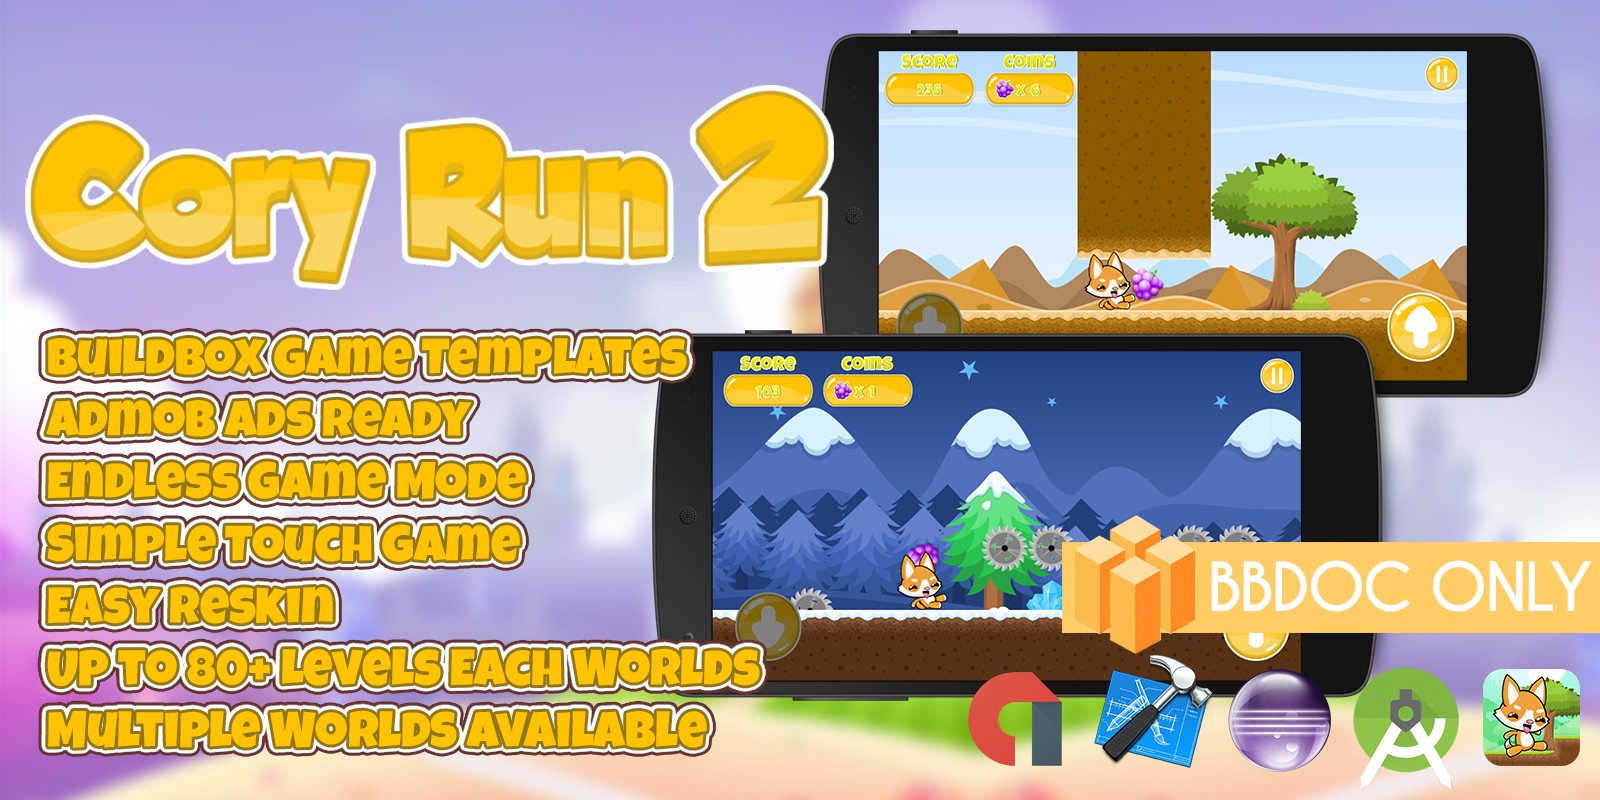 Cory Run 2 - Buildbox Game Template